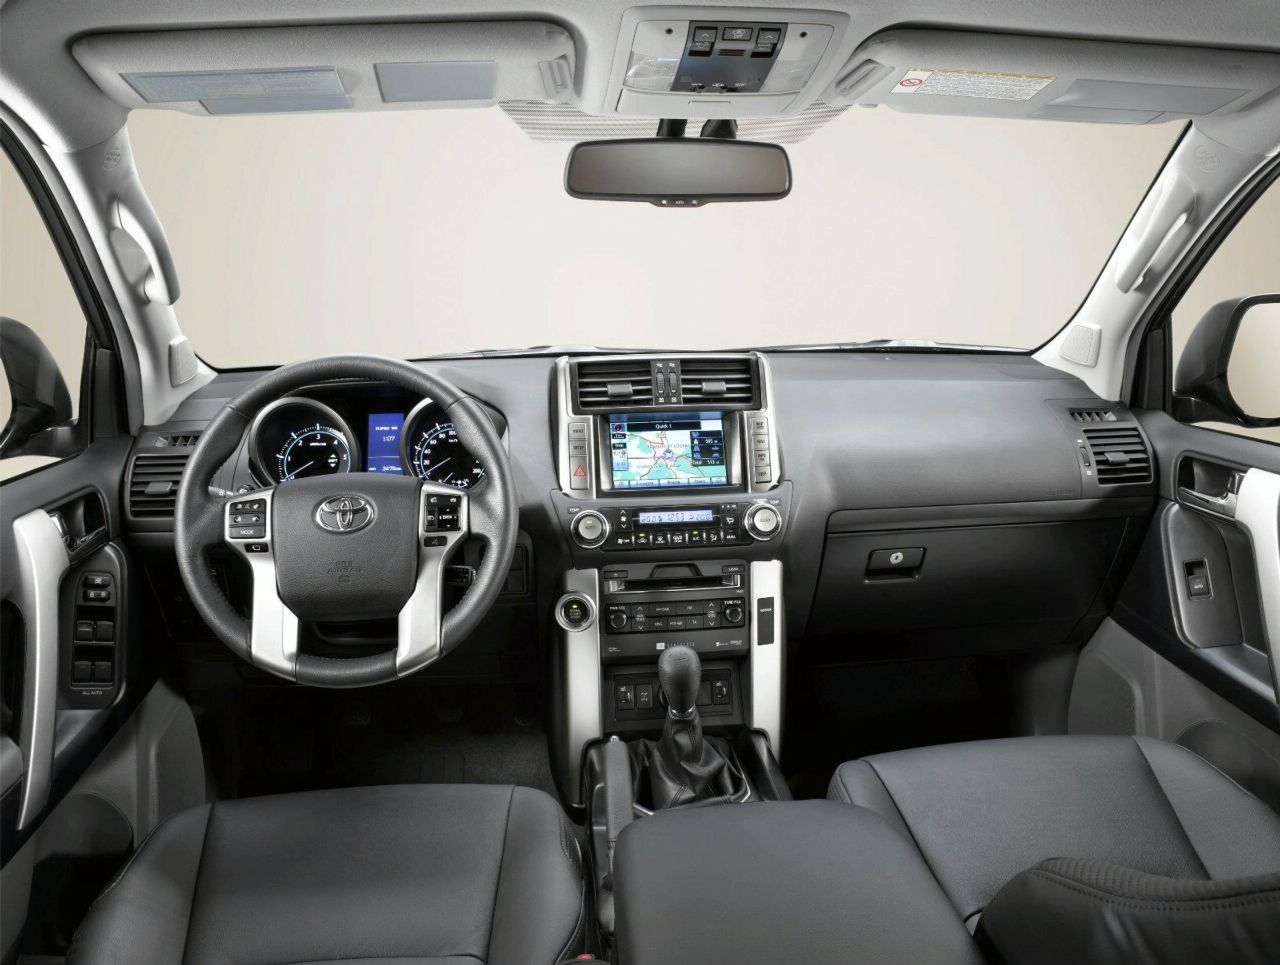 Toyota land cruiser 2010 interior img 9 it s your auto for Toyota land cruiser interior